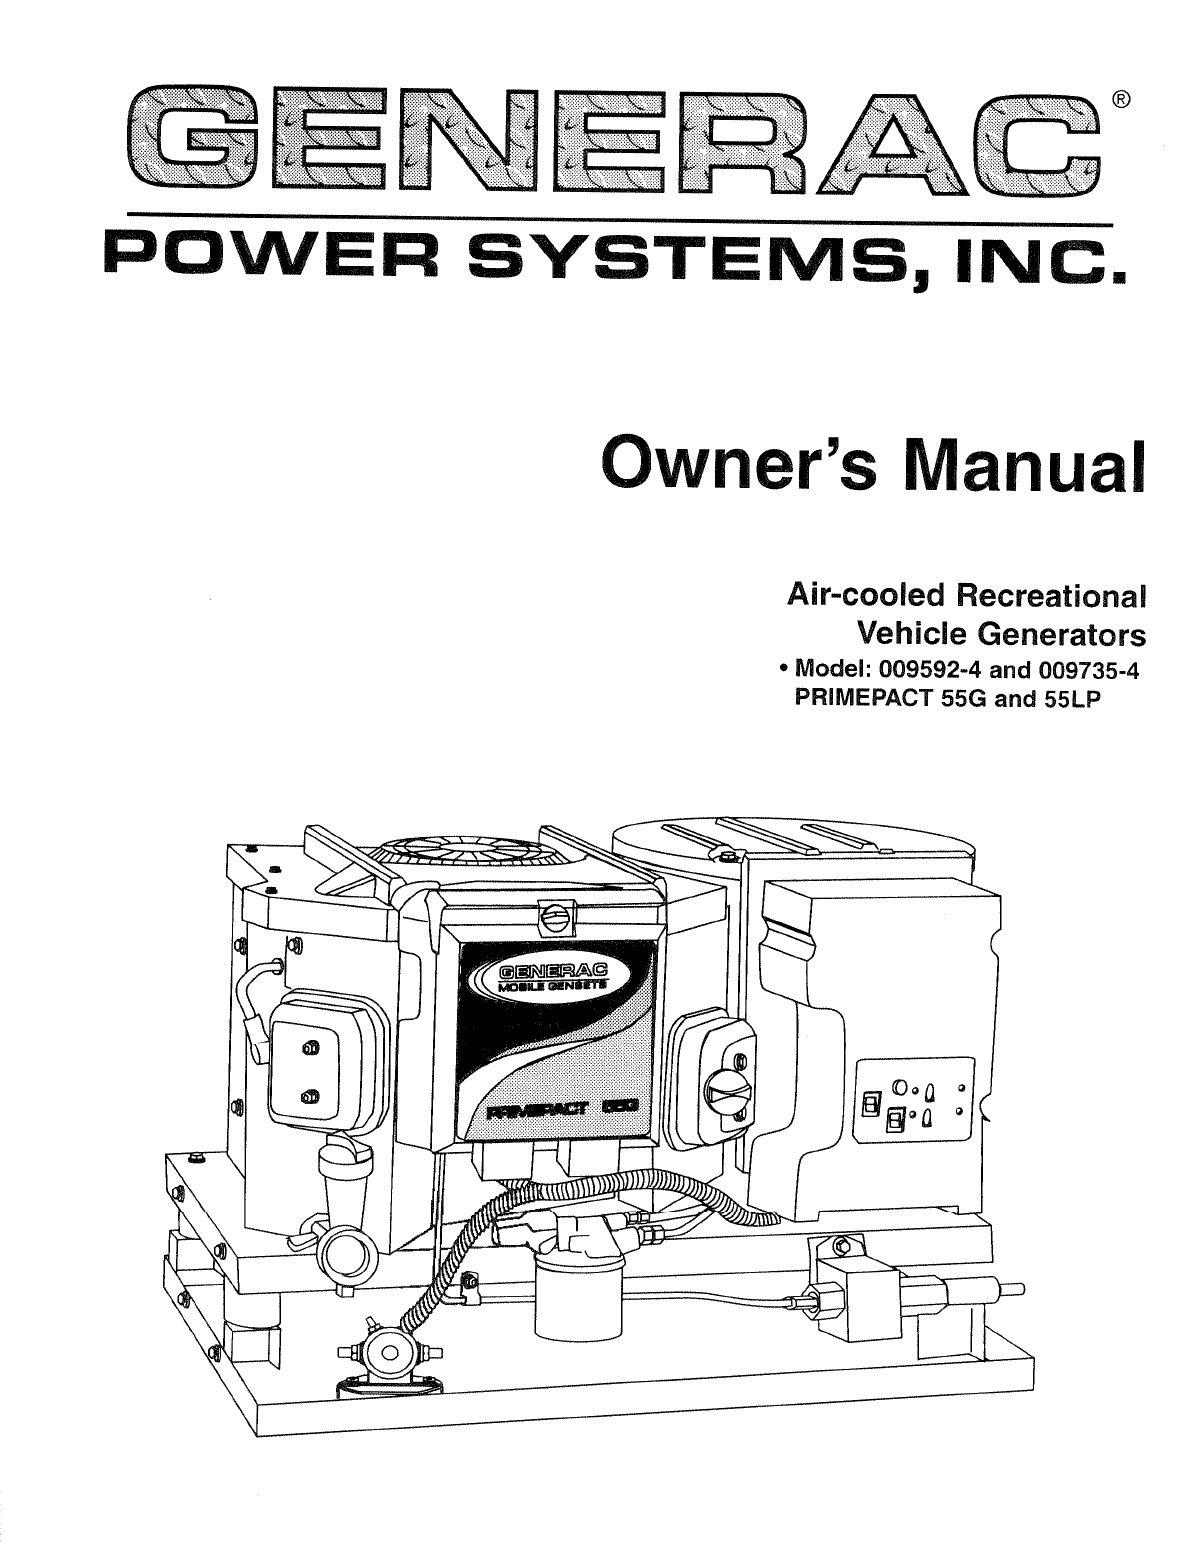 Generac Power Systems Portable Generator Q-Series User